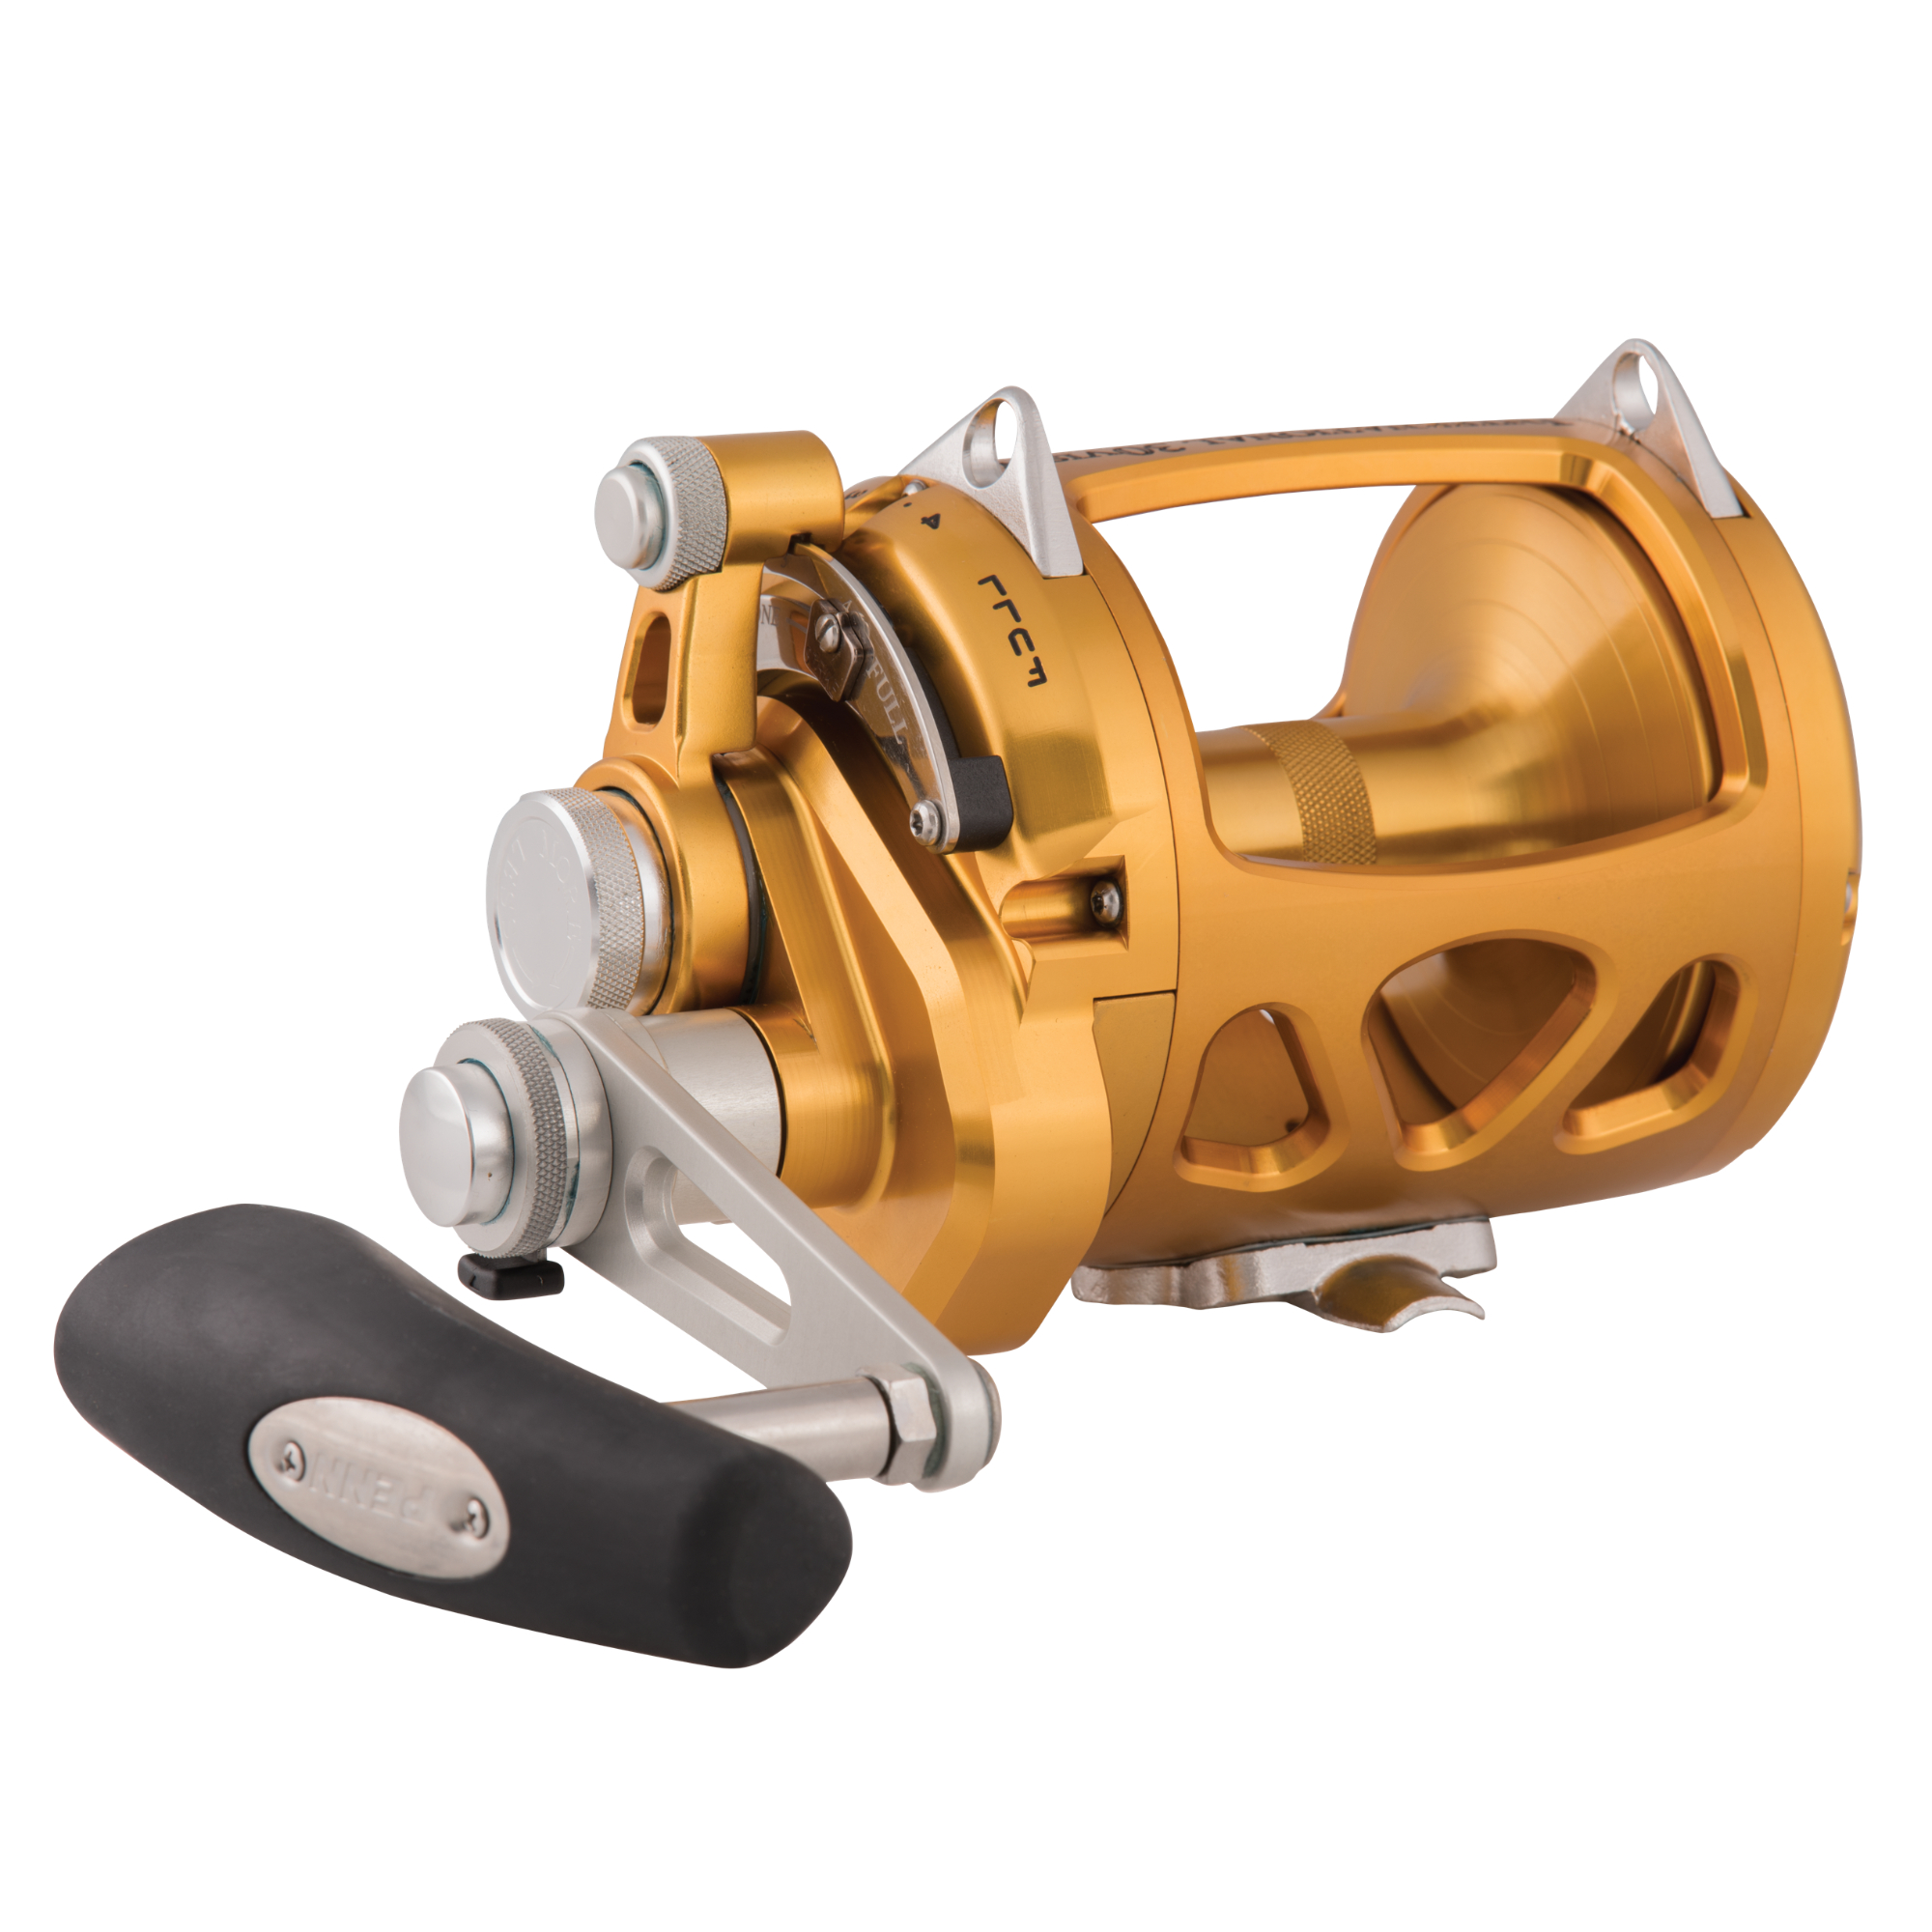 Penn INT30VISW International VI Gold Reel